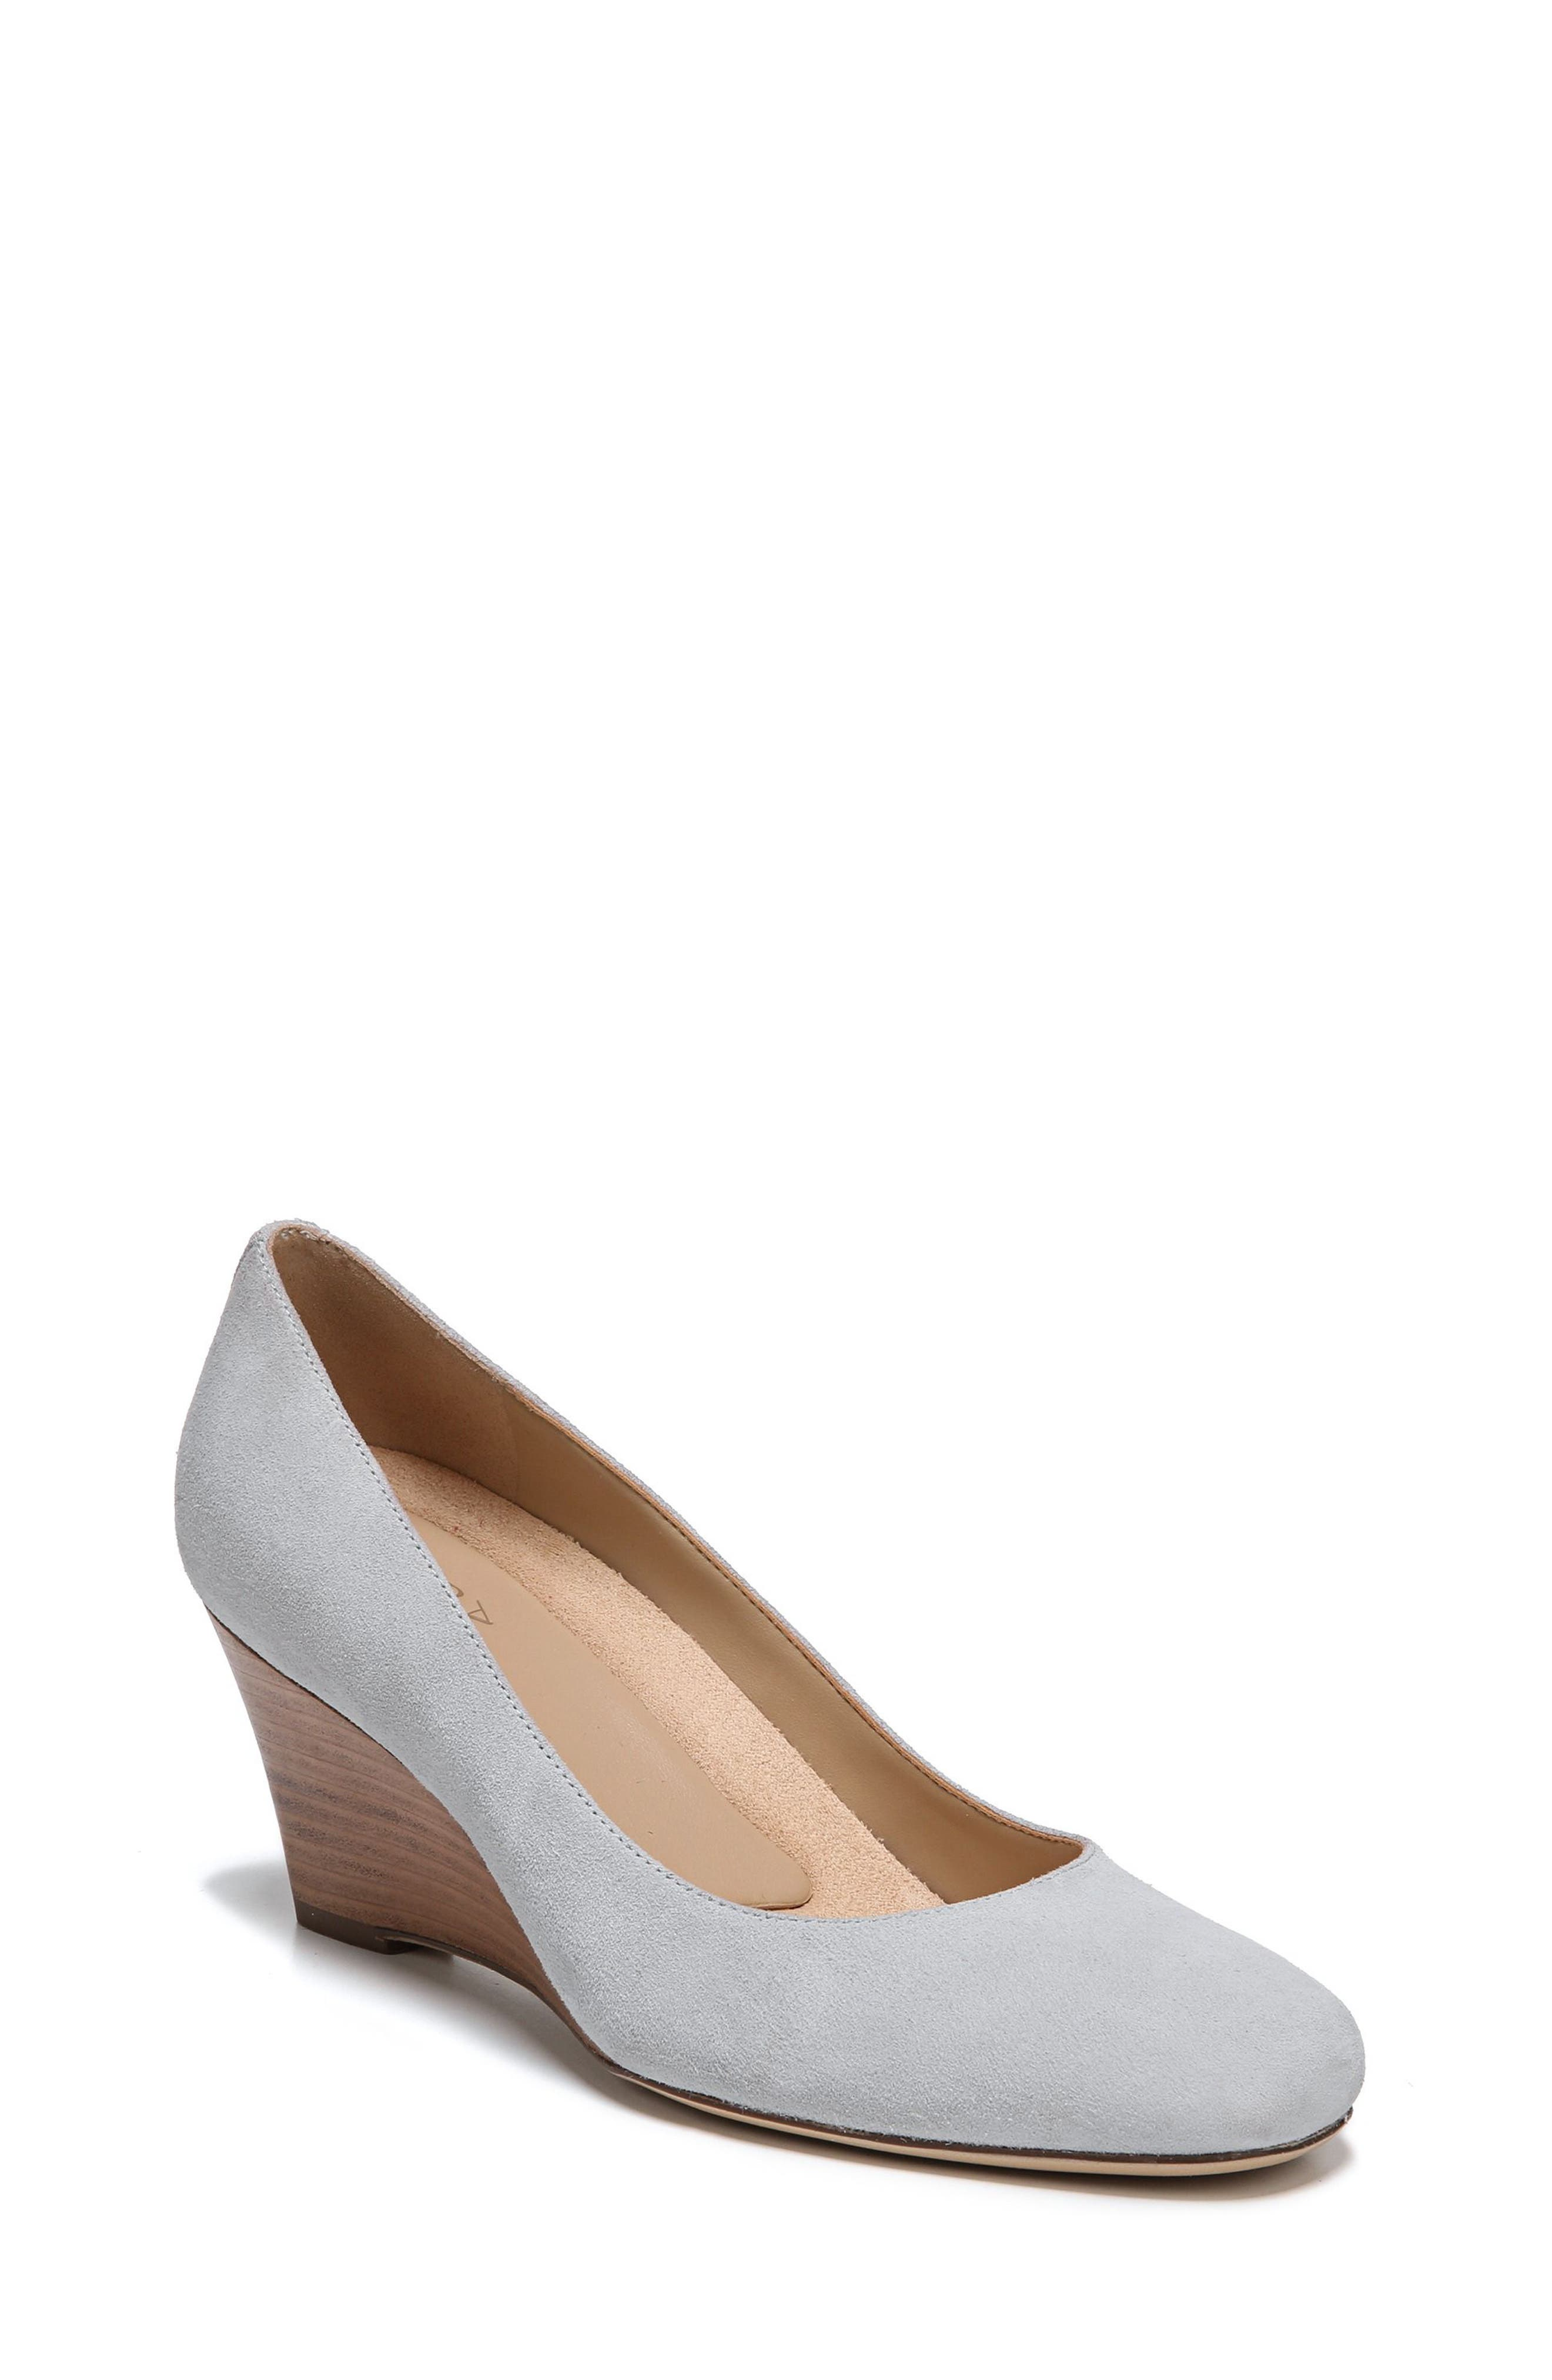 Emily Wedge Pump,                         Main,                         color, 402